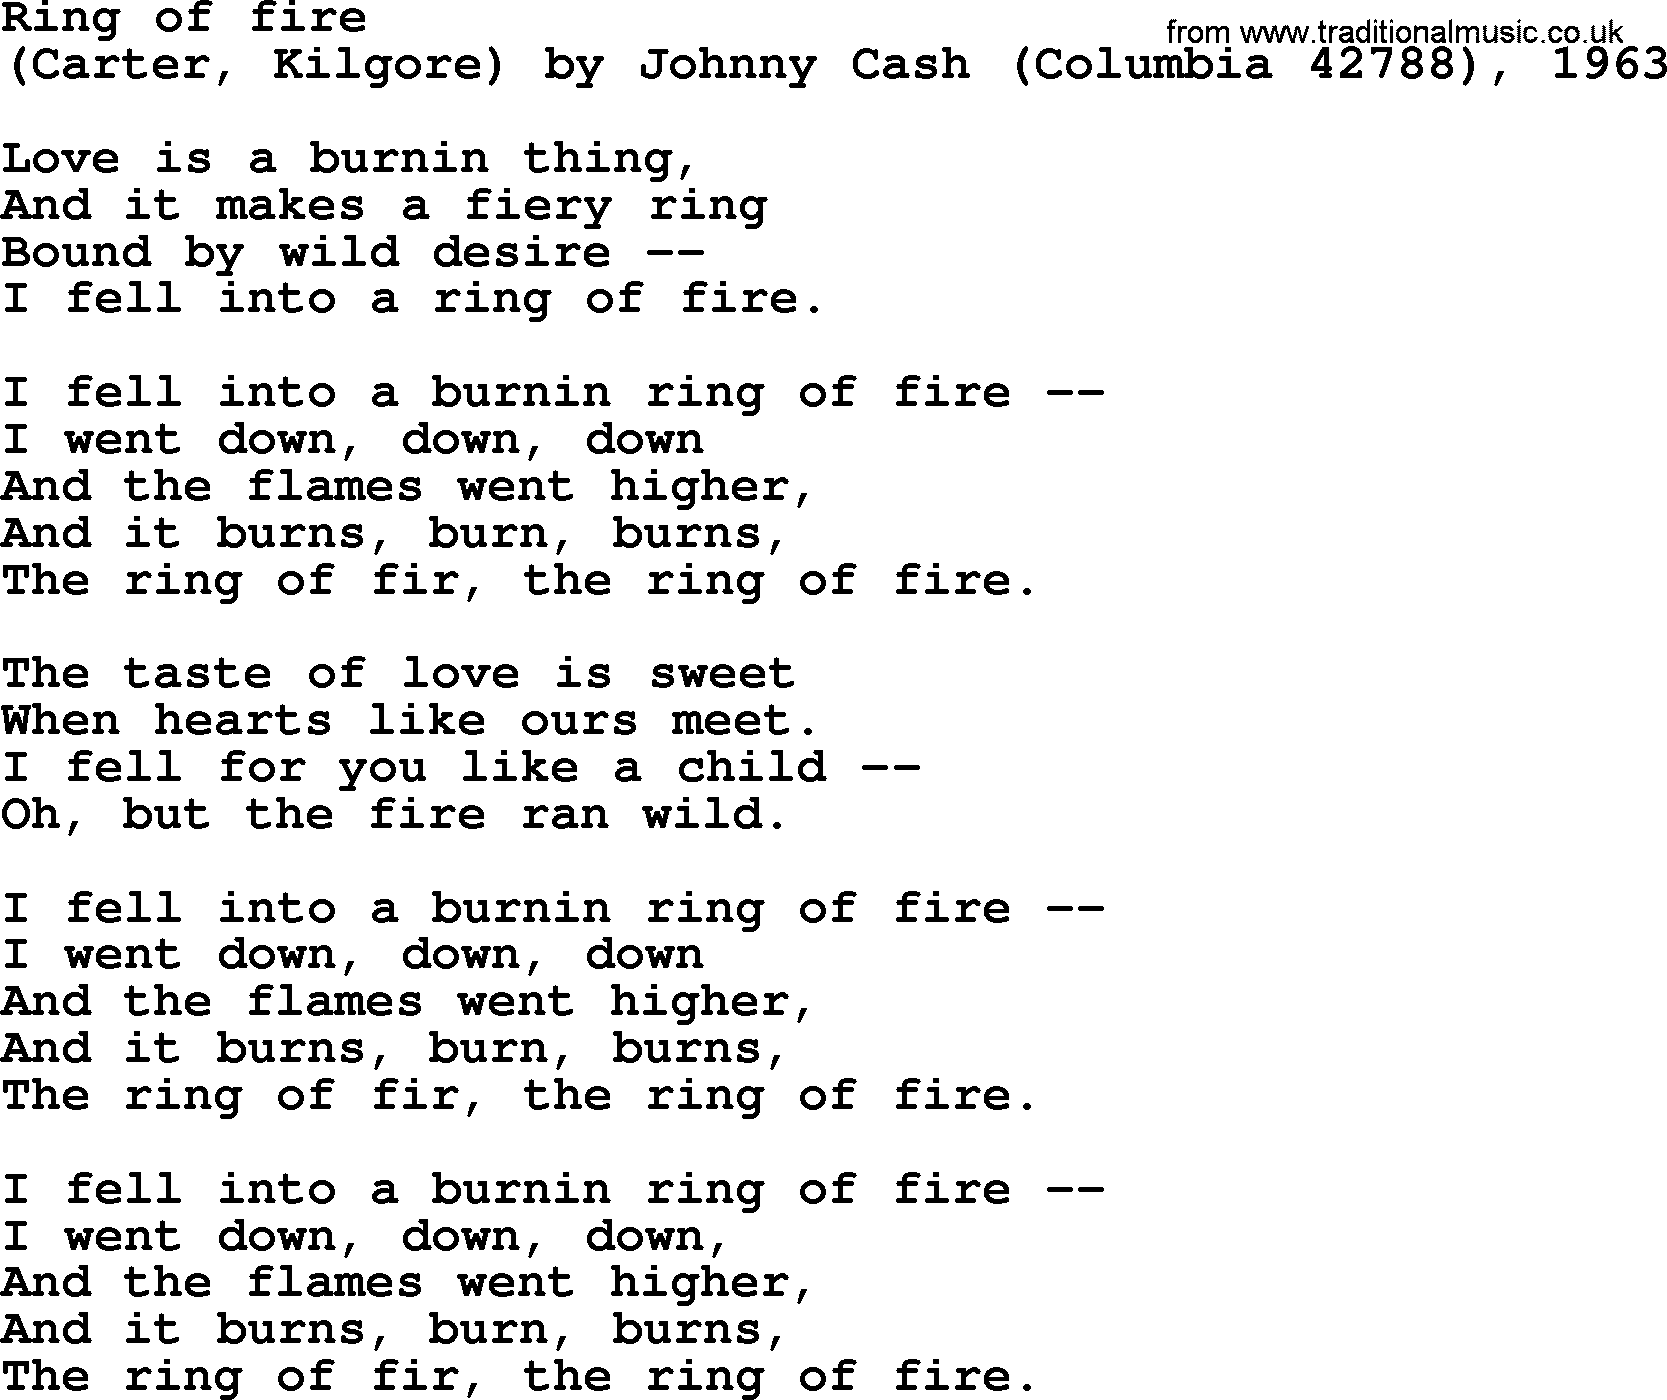 Bruce Springsteen song: Ring Of Fire, lyrics